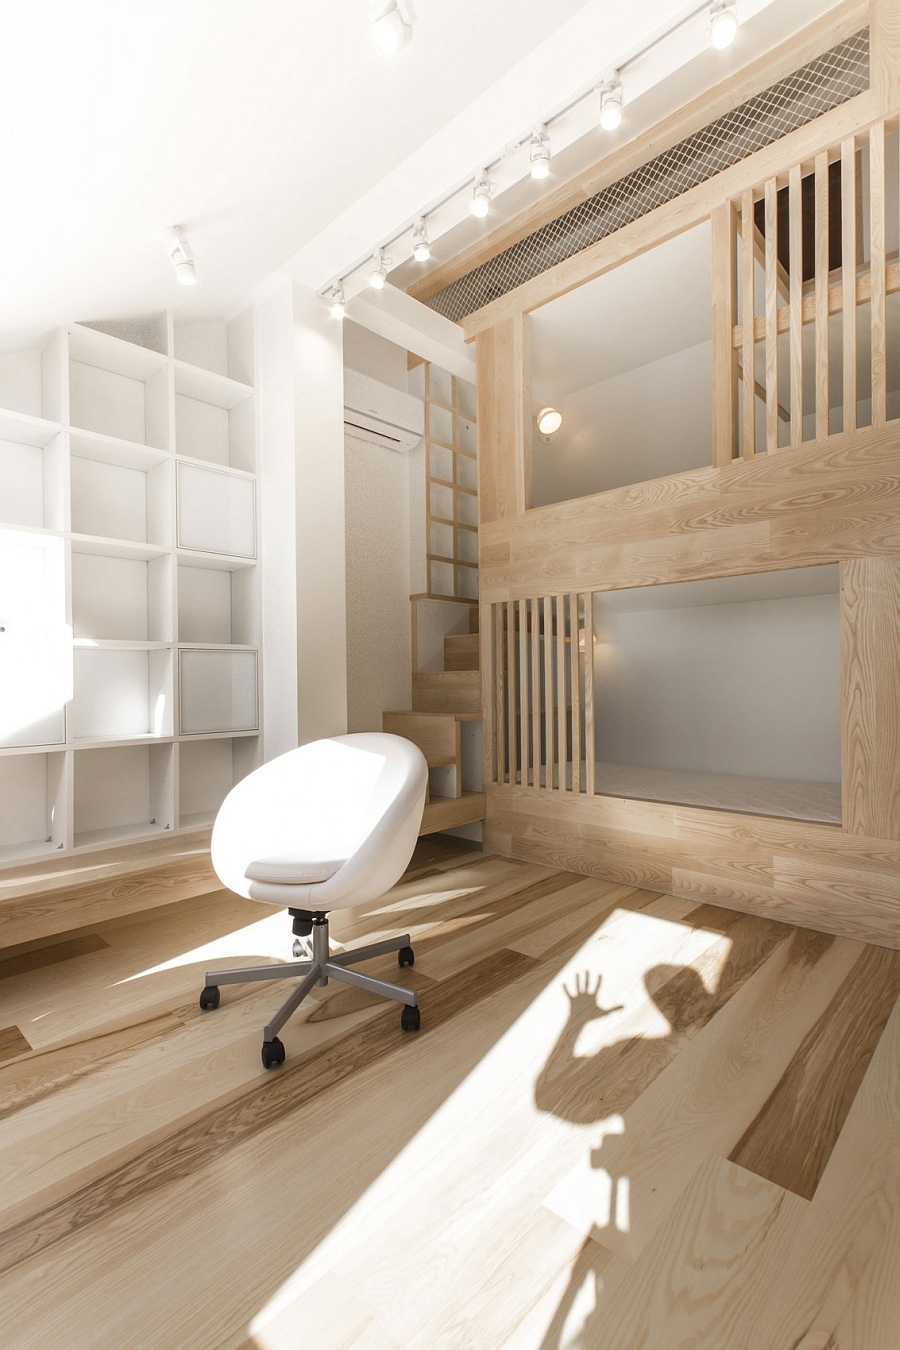 every element of the apartment including the curvy wooden staircase